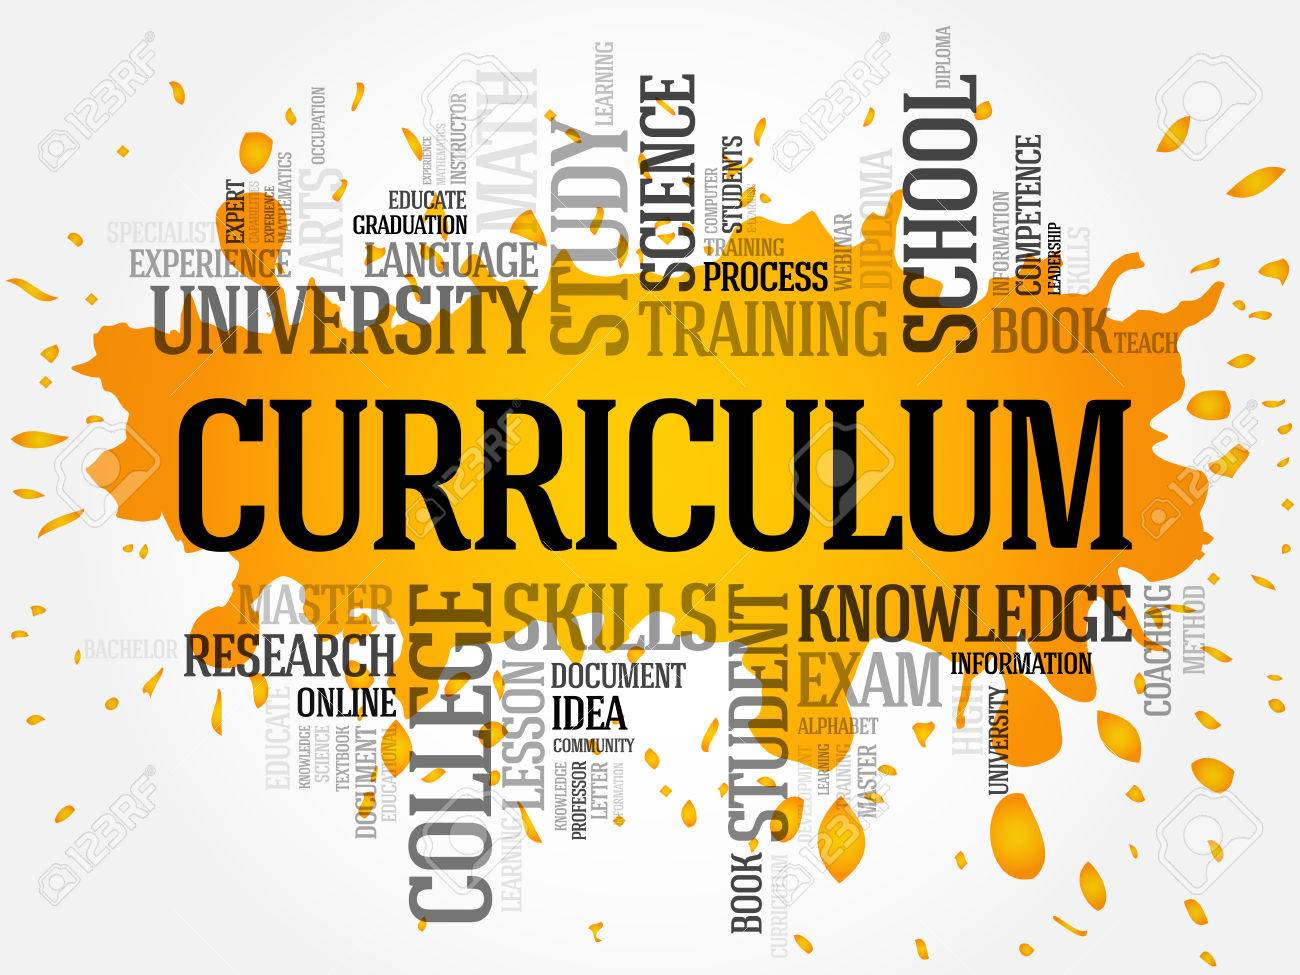 curriculum word cloud collage education concept background royalty rh 123rf com school curriculum clipart creative curriculum clipart